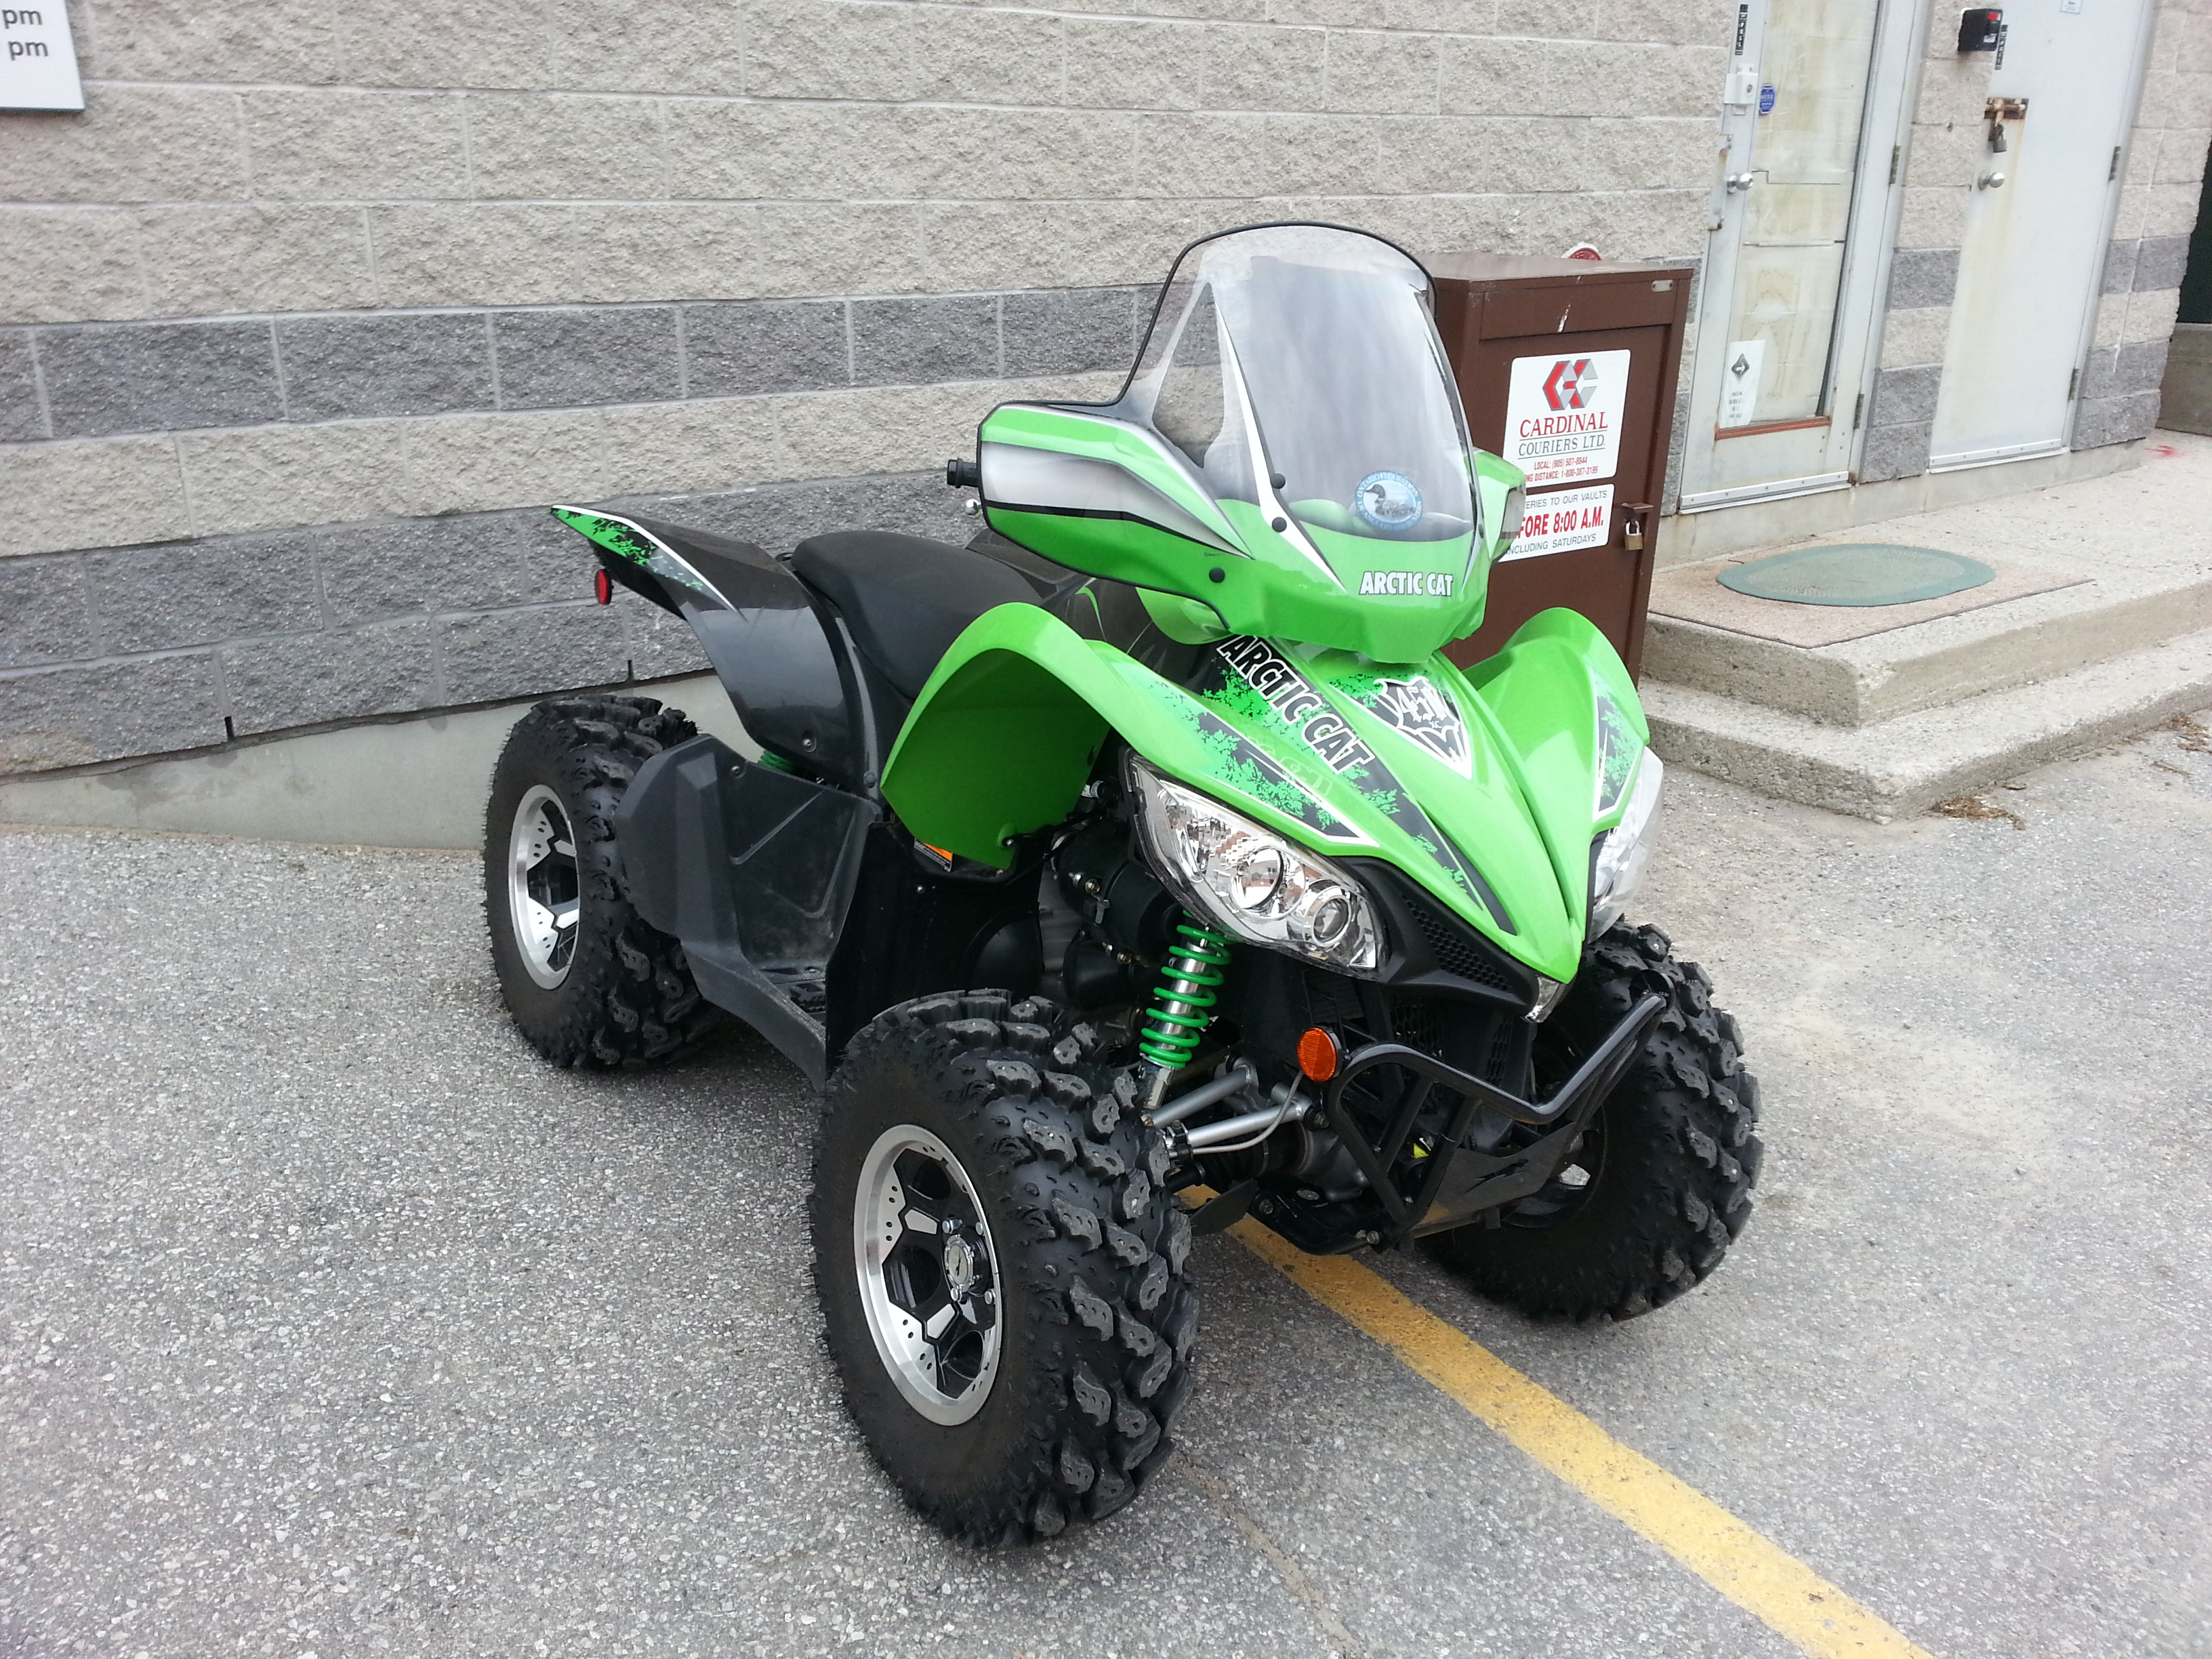 2011 Arctic Cat 450 4 Wheel Drive Electronic Fuel Injection 250 km's (30 hrs) c/w Fairing & Stock Tires $5499